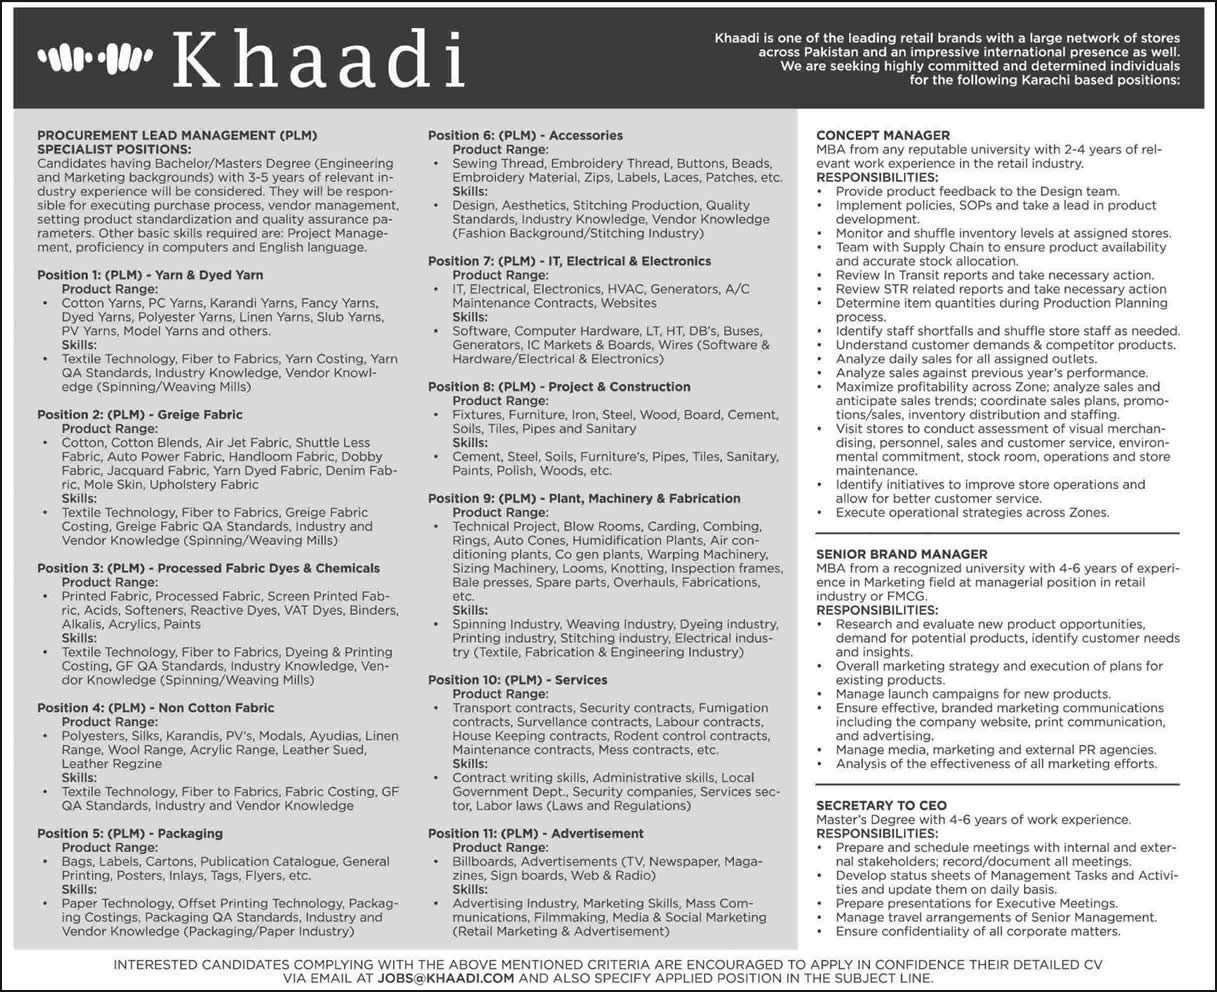 khaadi jobs karachi procurement lead management khaadi jobs 2015 karachi procurement lead management concept brand manager secretary